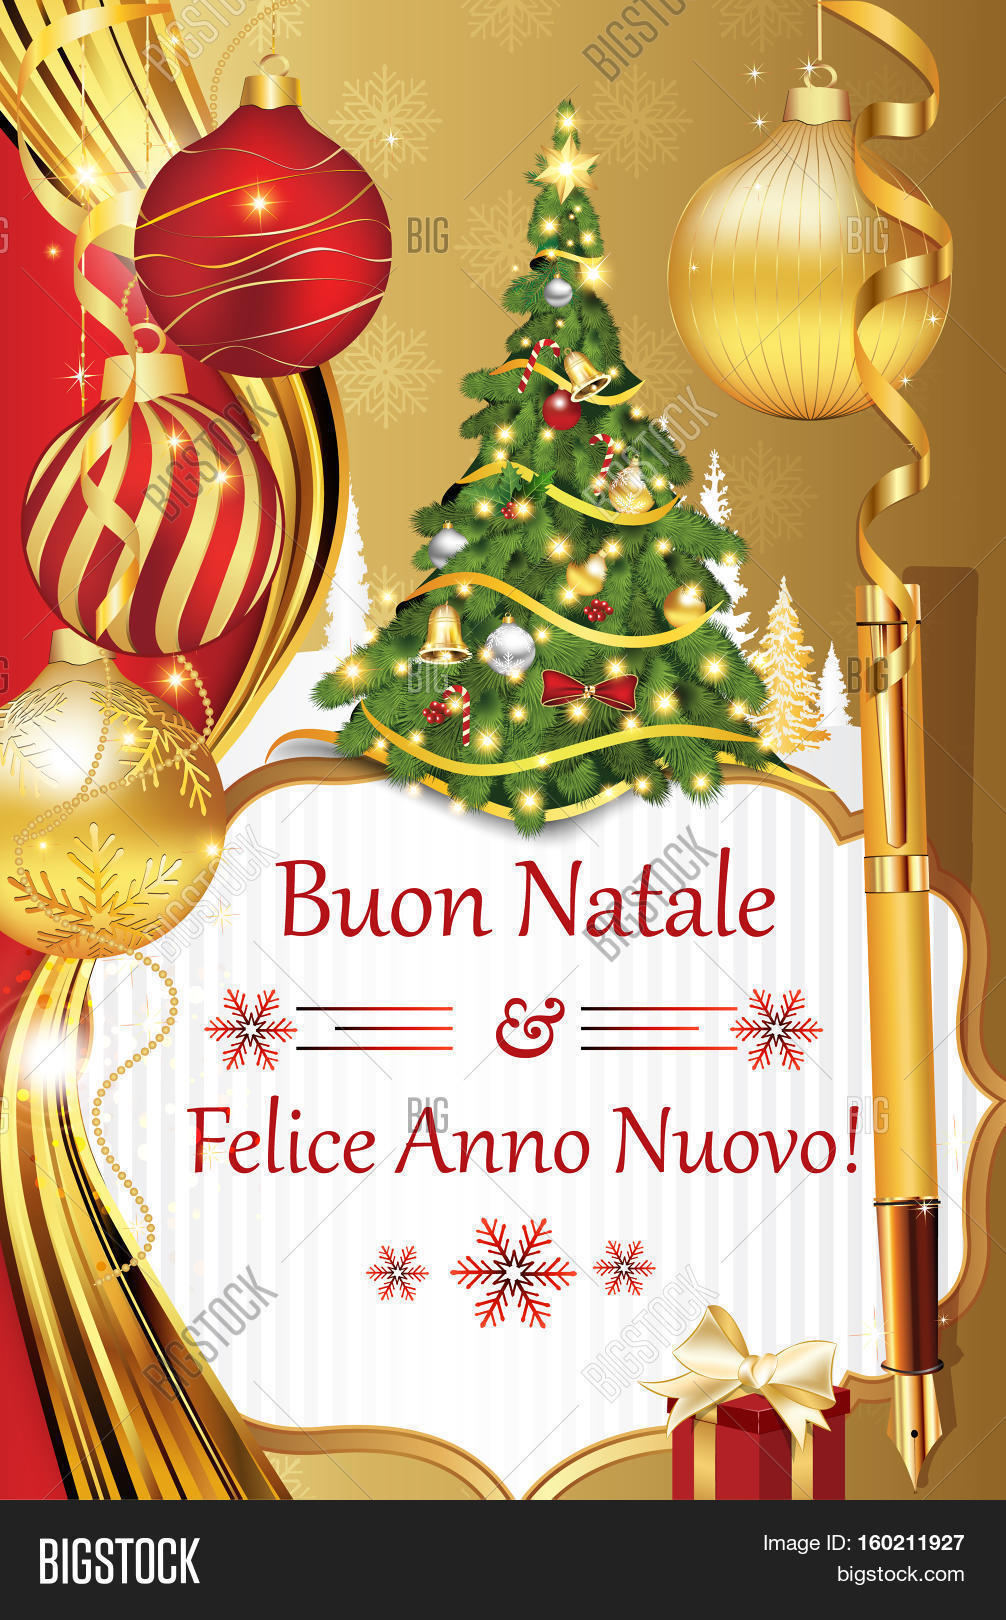 buon natale e felice anno nuovo new year wishes in italian language merry - Merry Christmas And Happy New Year In Italian